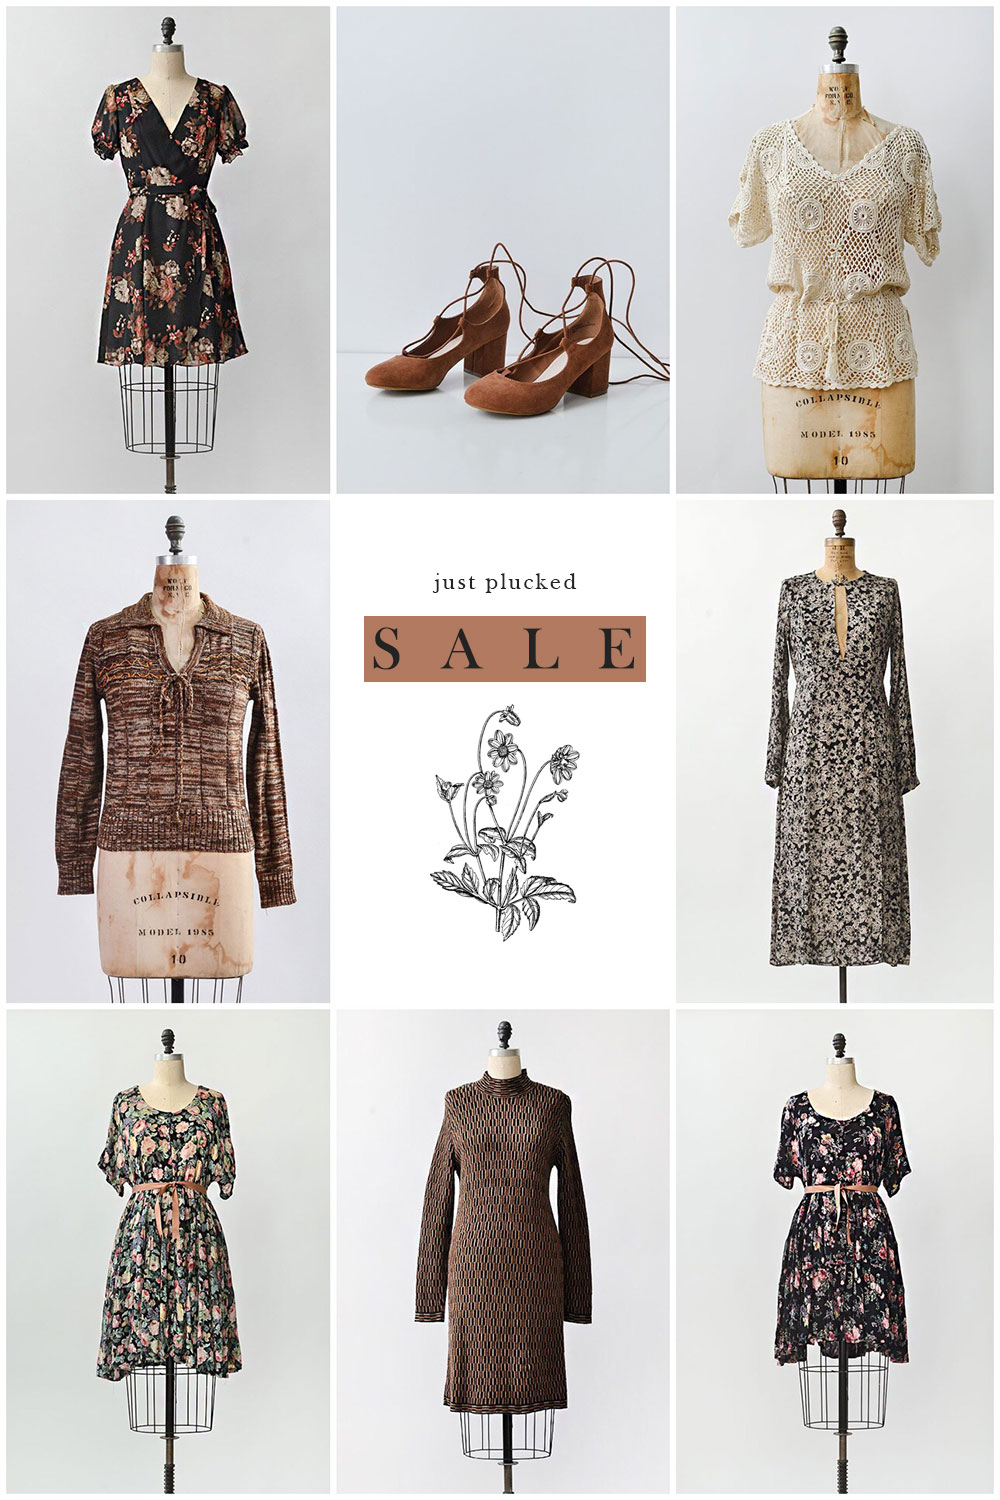 Adored Vintage / New Markdowns in SALE SECTION